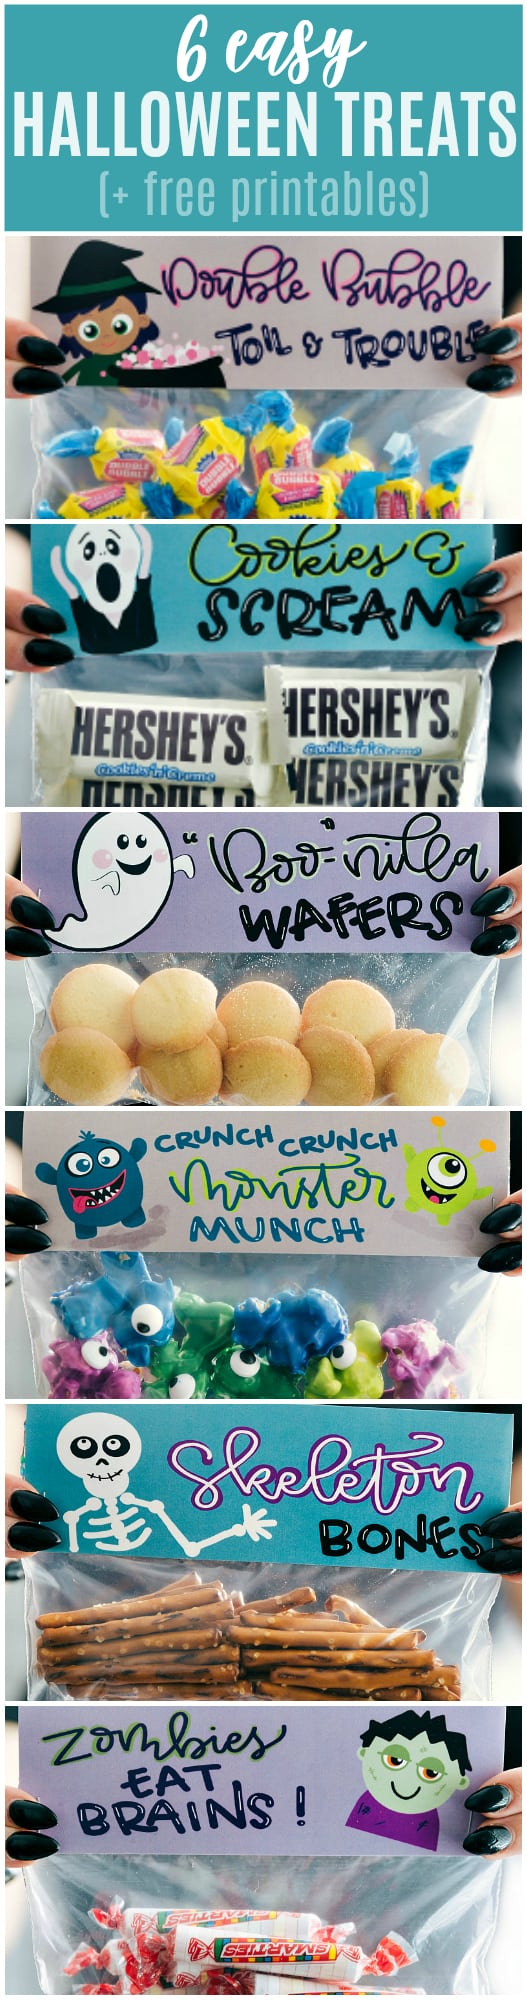 6 fun and festive easy Halloween bags filled with delicious treats! These candies/treats are put in a snack-size ziplock bag and you can staple on the FREE printable bag toppers! via chelseasmessyapron.com #halloween #gift #favor #party #dessert #candy #treat #easy #quick #free #printable #witch #pumpkin #dracula #zombie #mummy #ghost #skeleton #monster #zombies #kids #healthy #healthier #simple #fun #halloween #decor